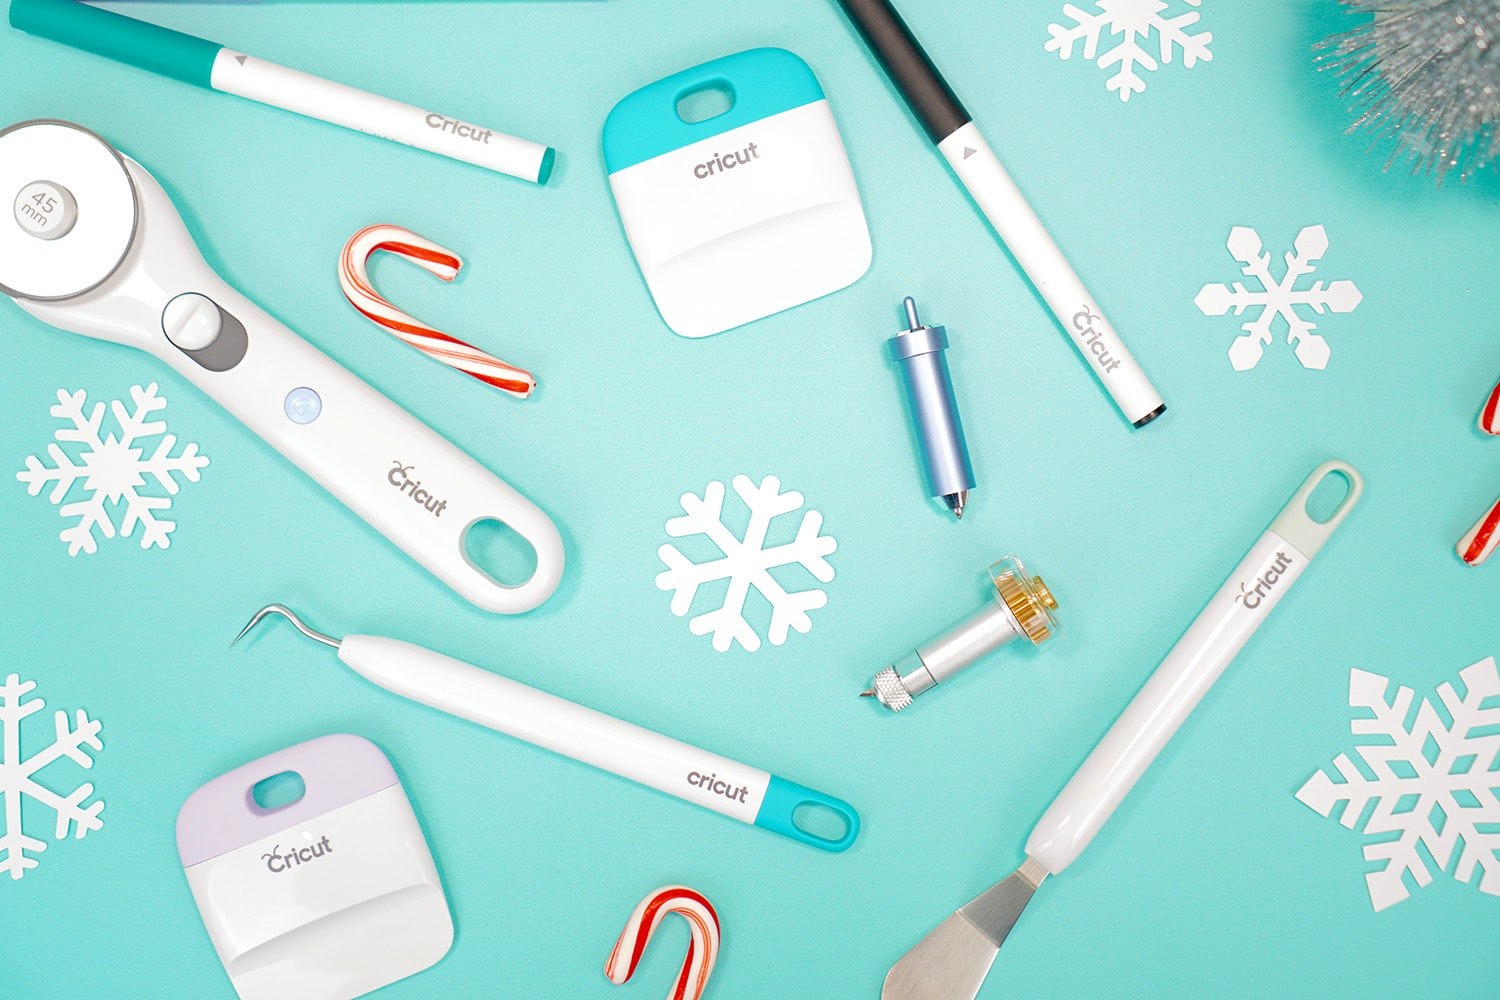 Scattered Cricut tools and accessories on aqua background with paper snowflakes and candy canes